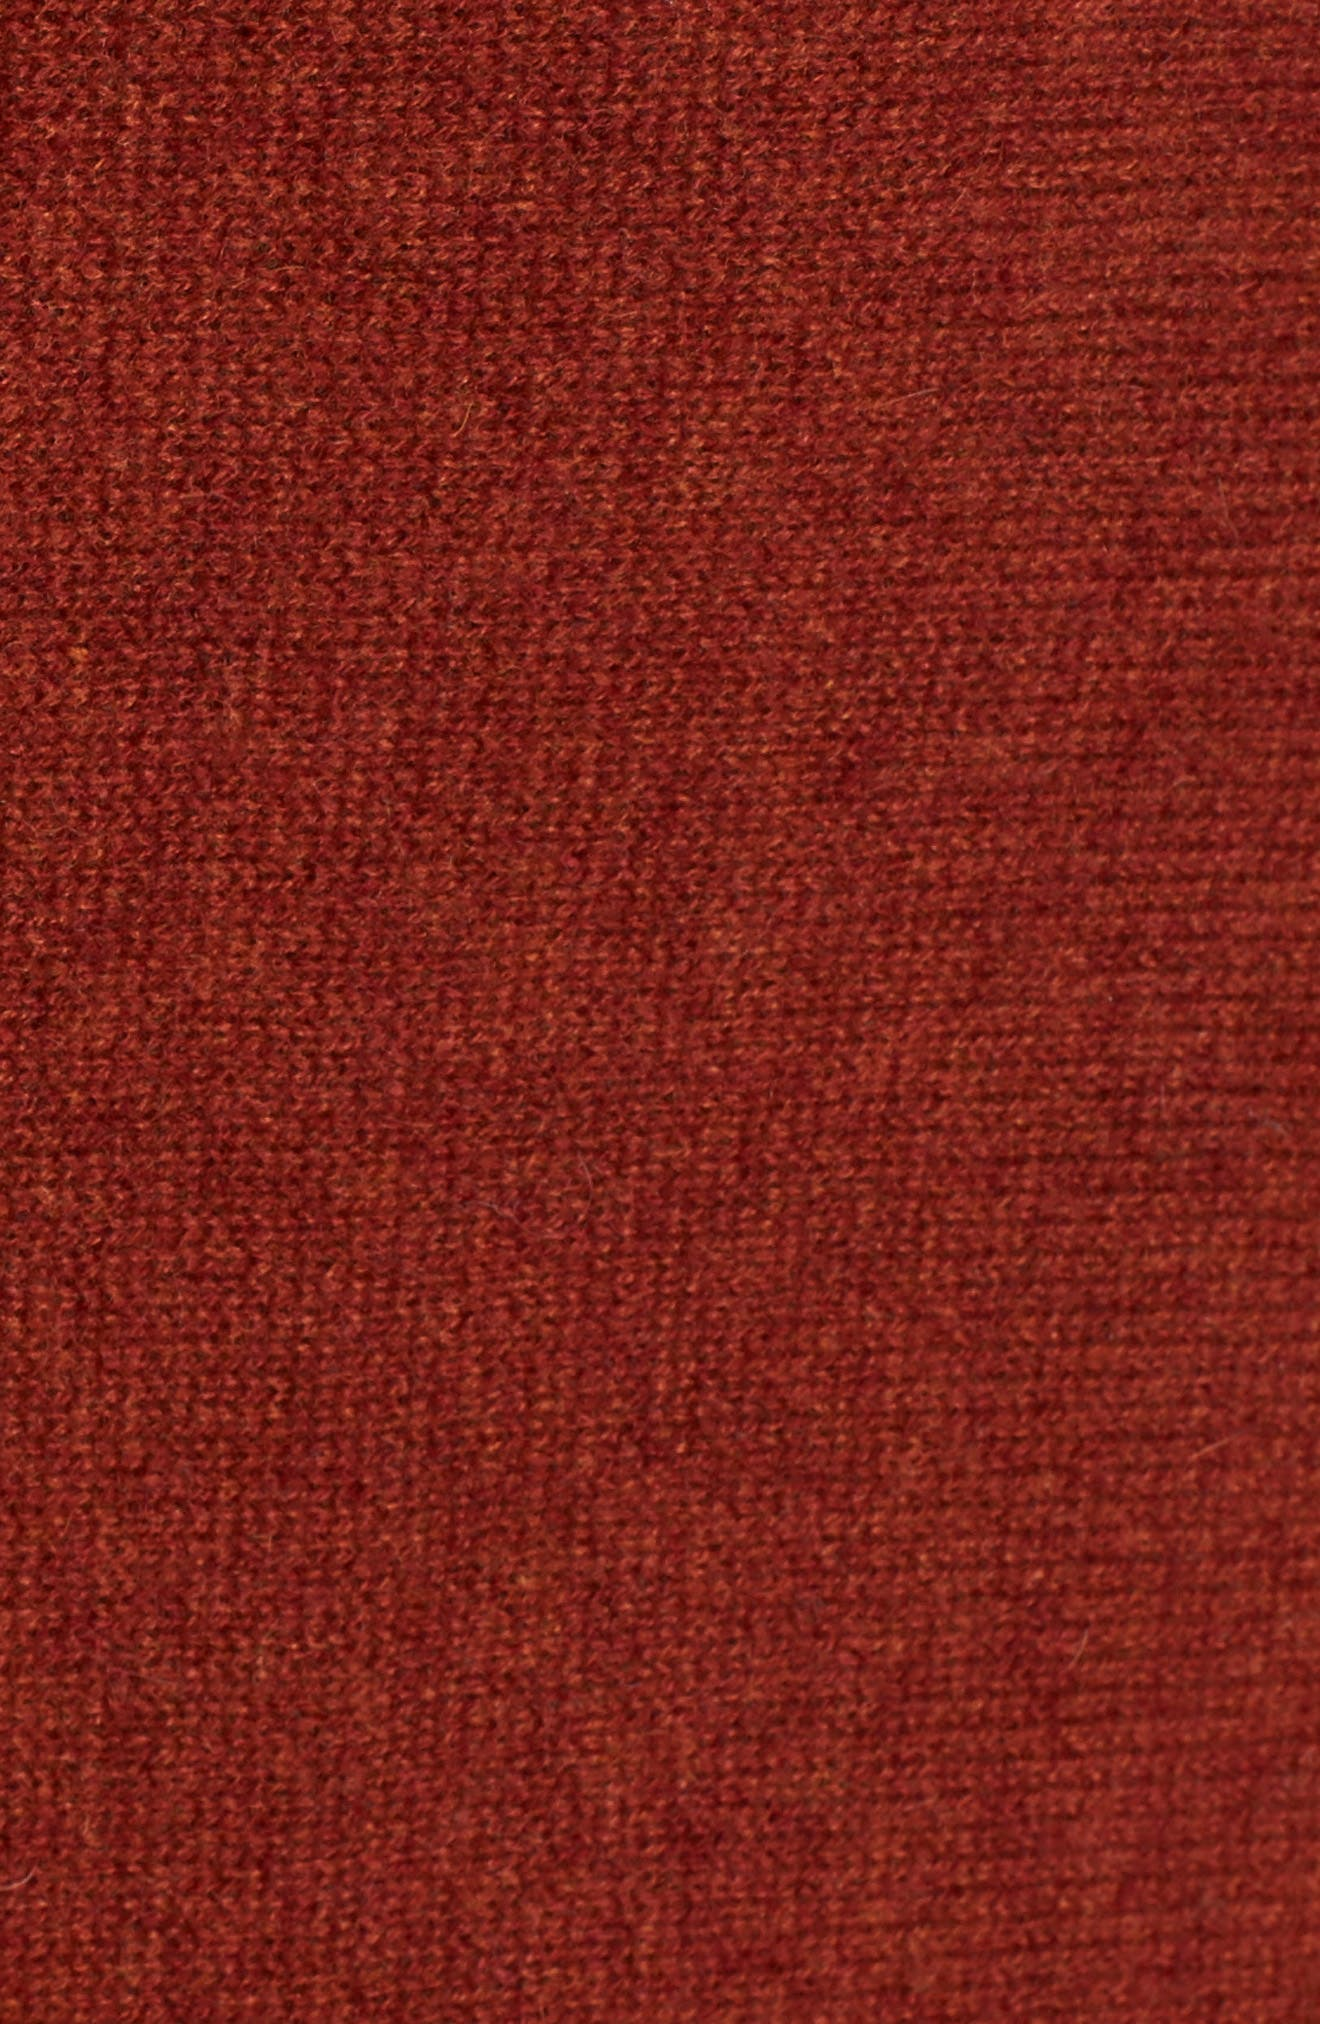 Cashmere Wrap,                             Alternate thumbnail 5, color,                             200